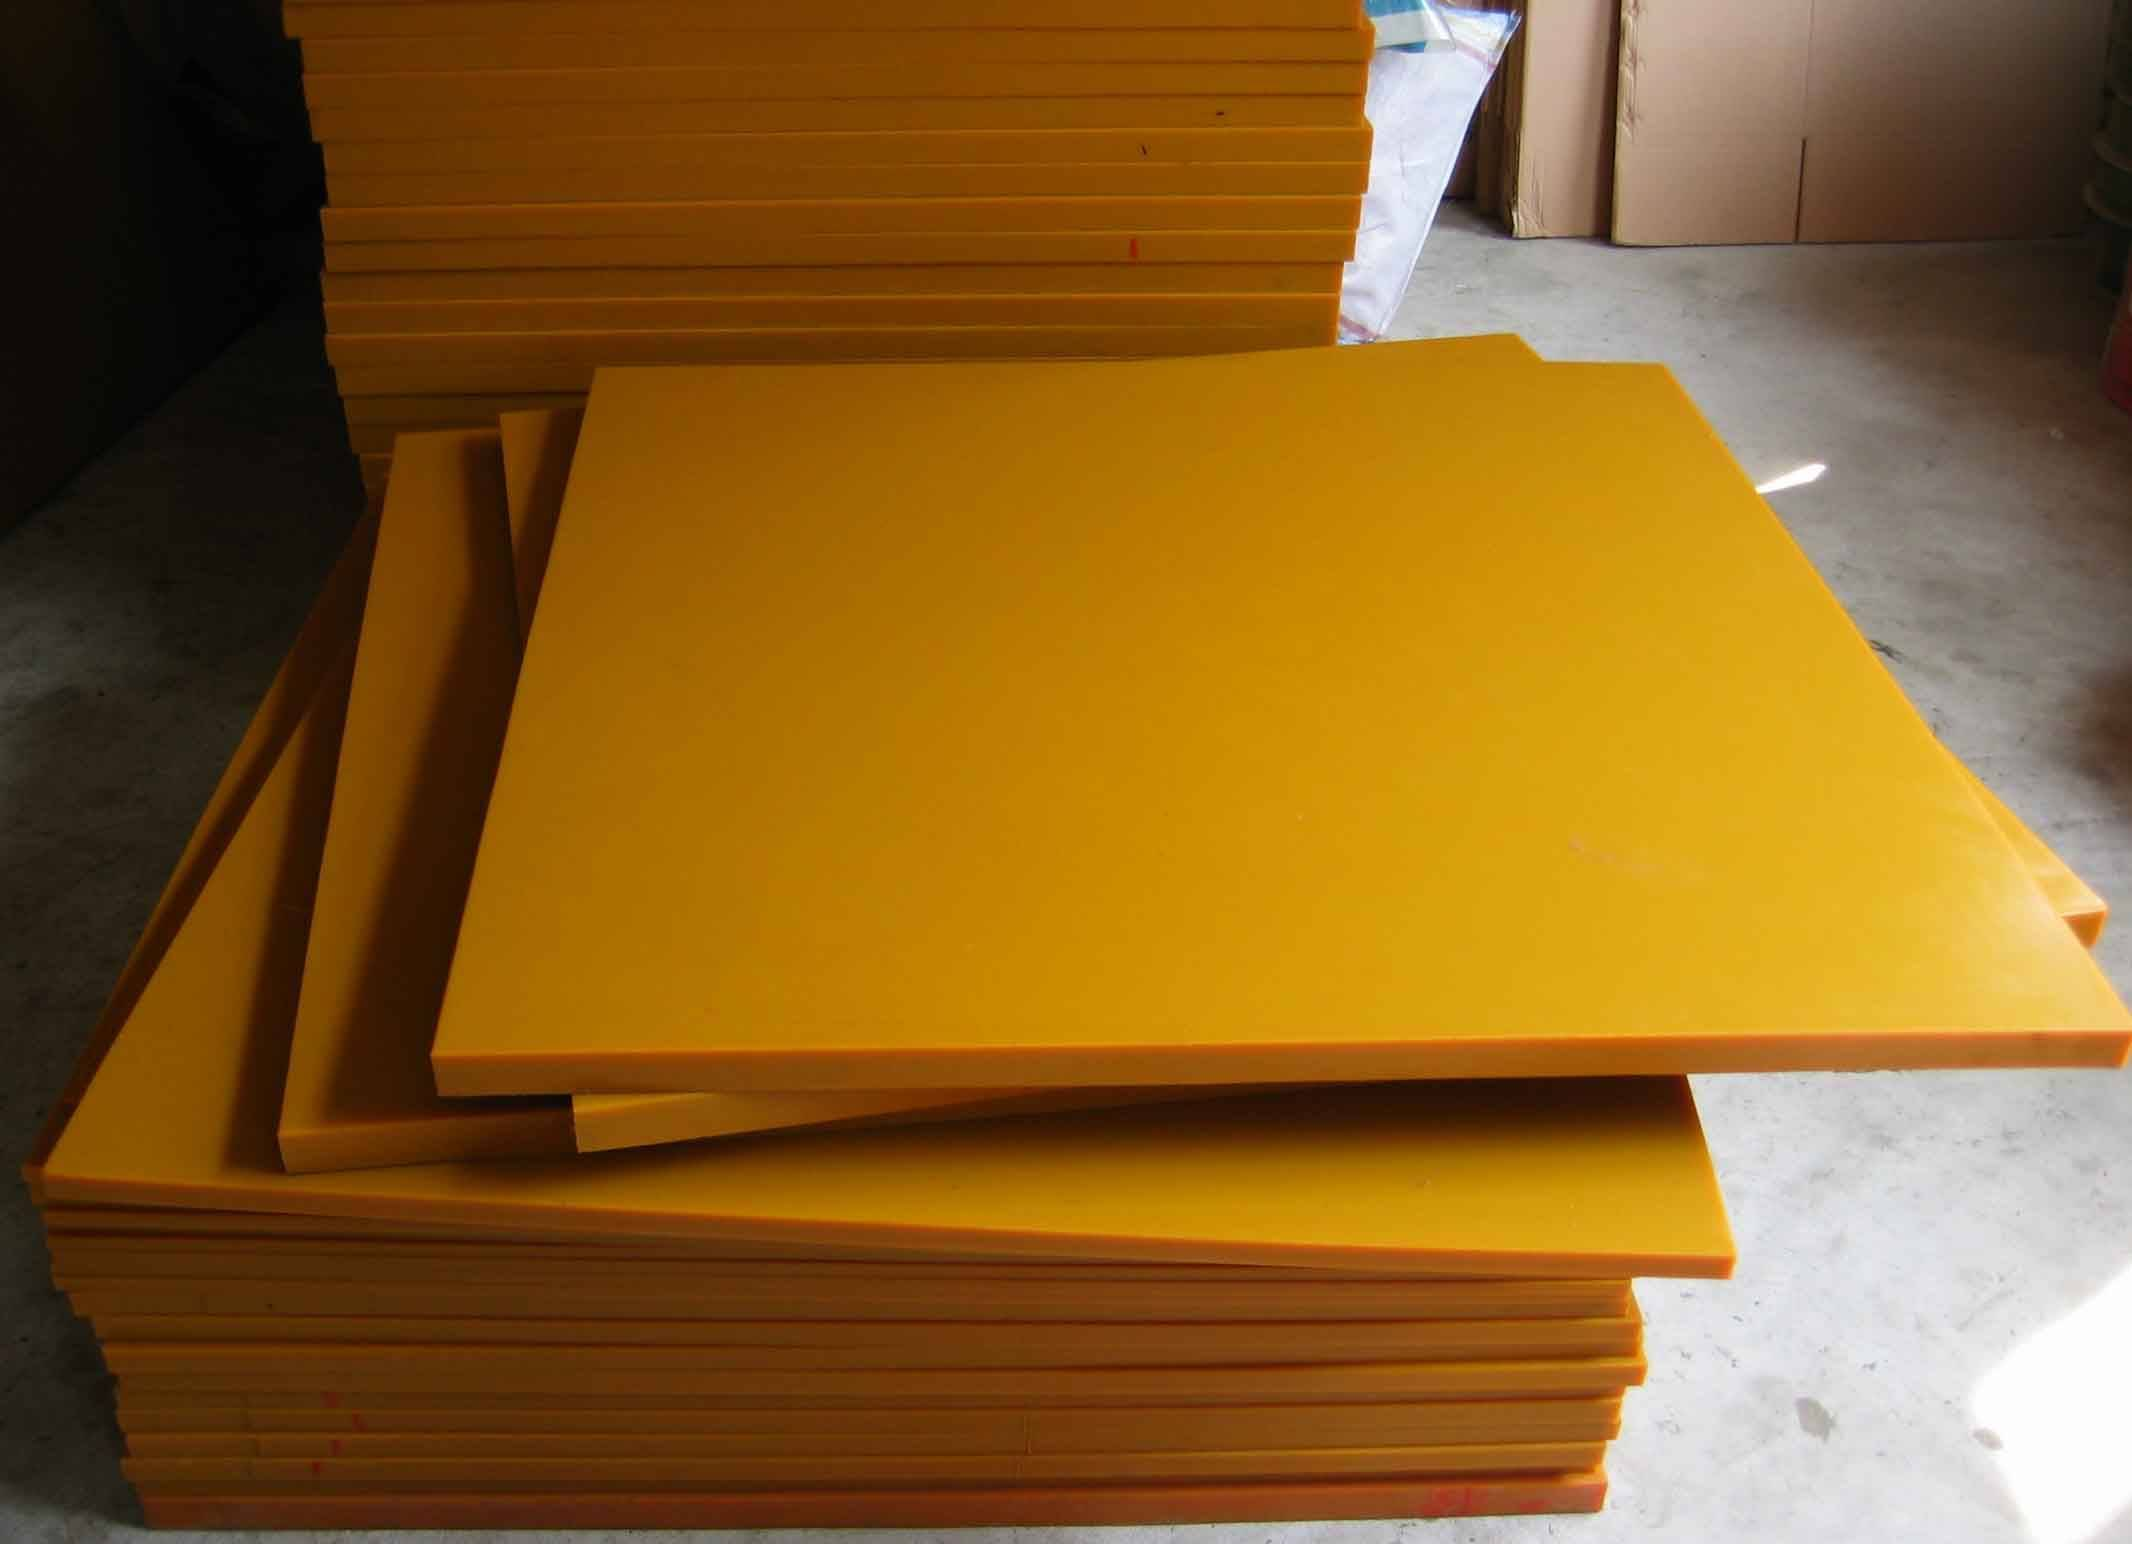 80-90shore A dark yellow polyurethane sheet, PU sheet